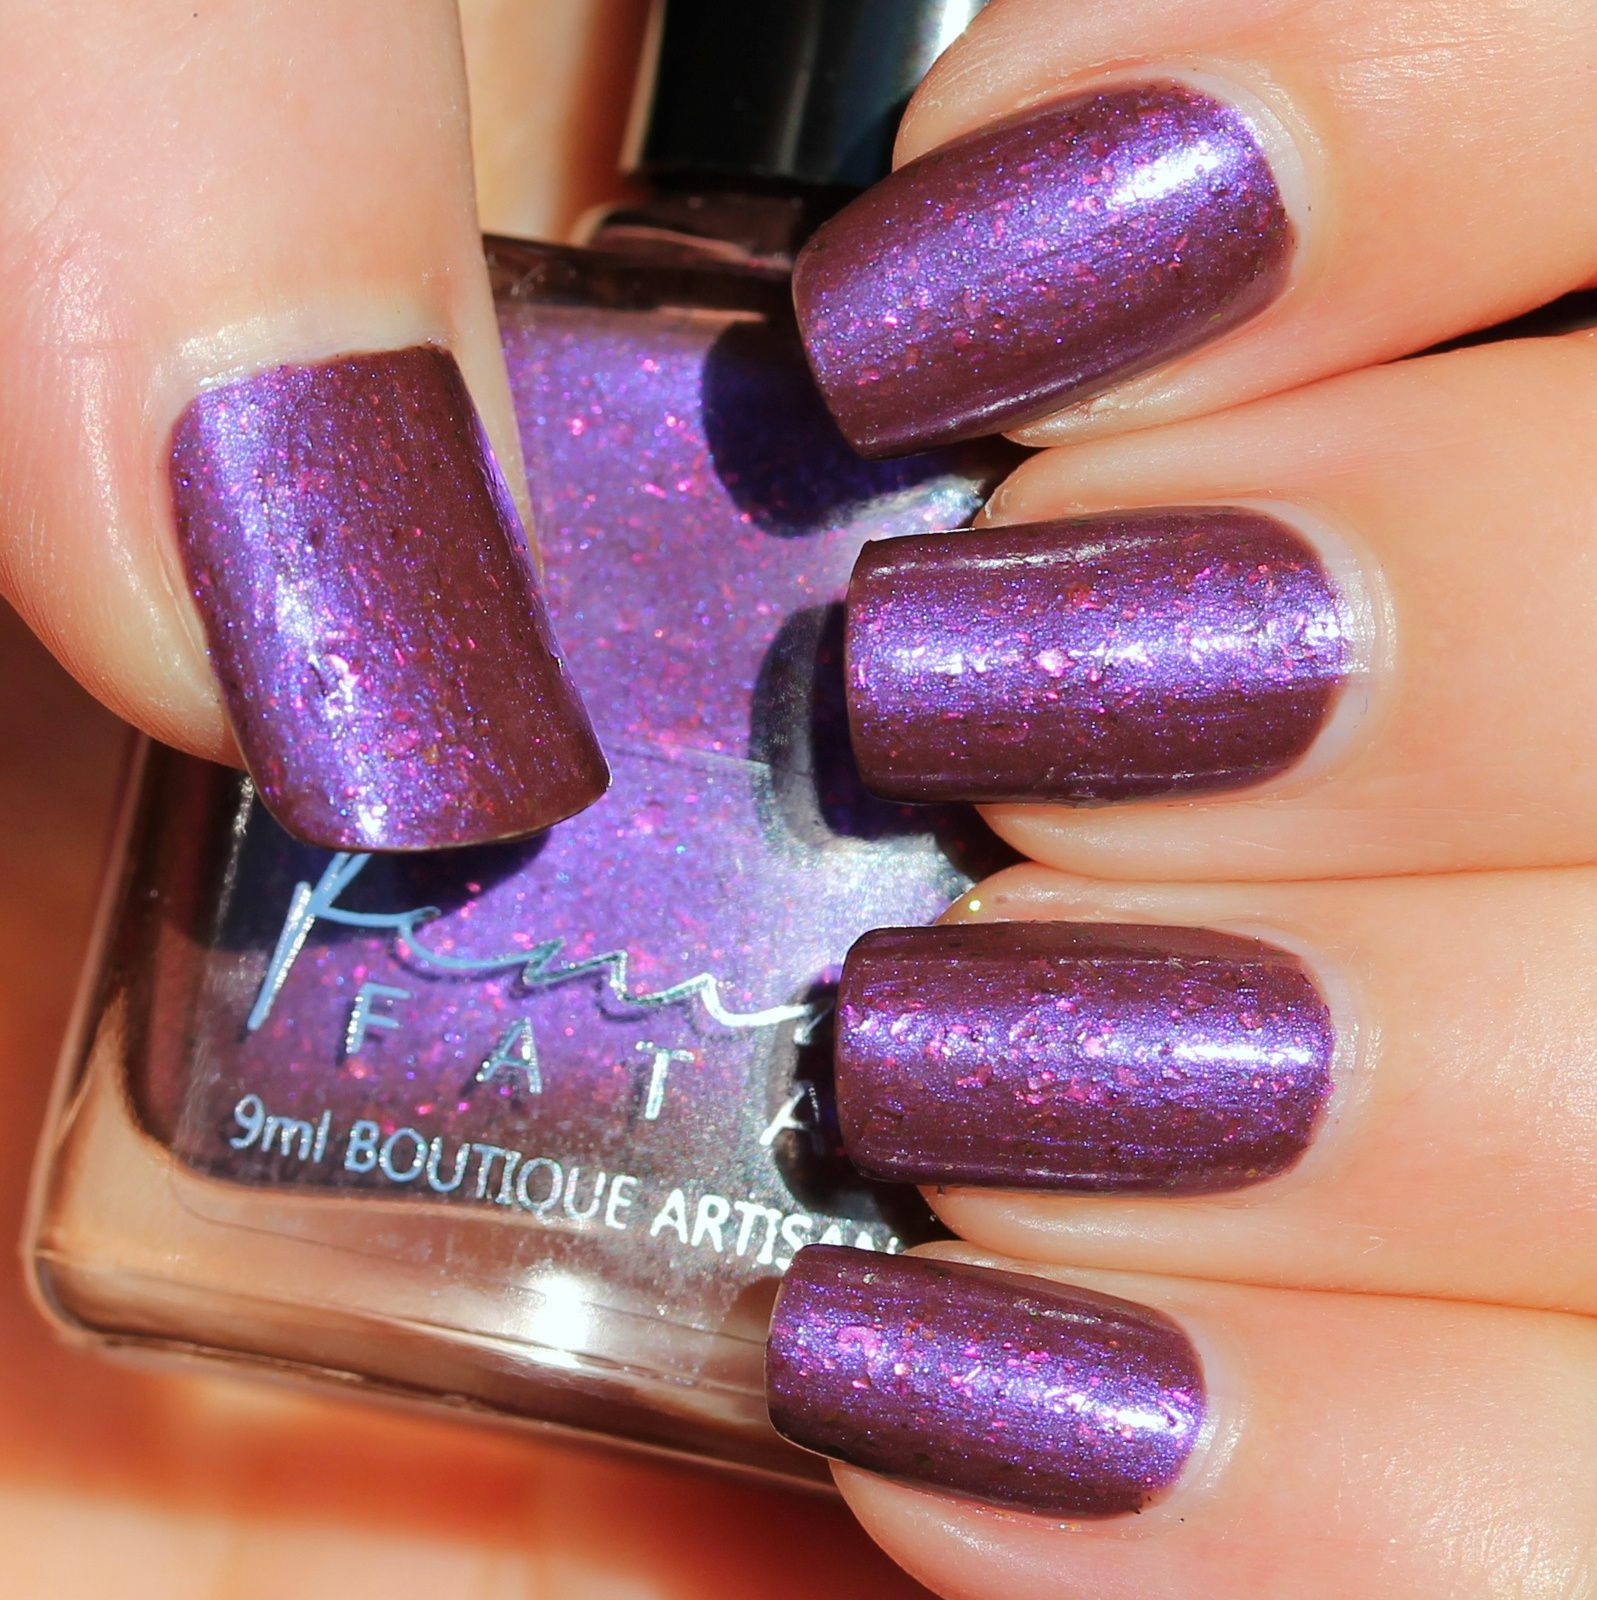 Femme Fatale Cosmetics - Genetic Memory (2 coats, no top coat)